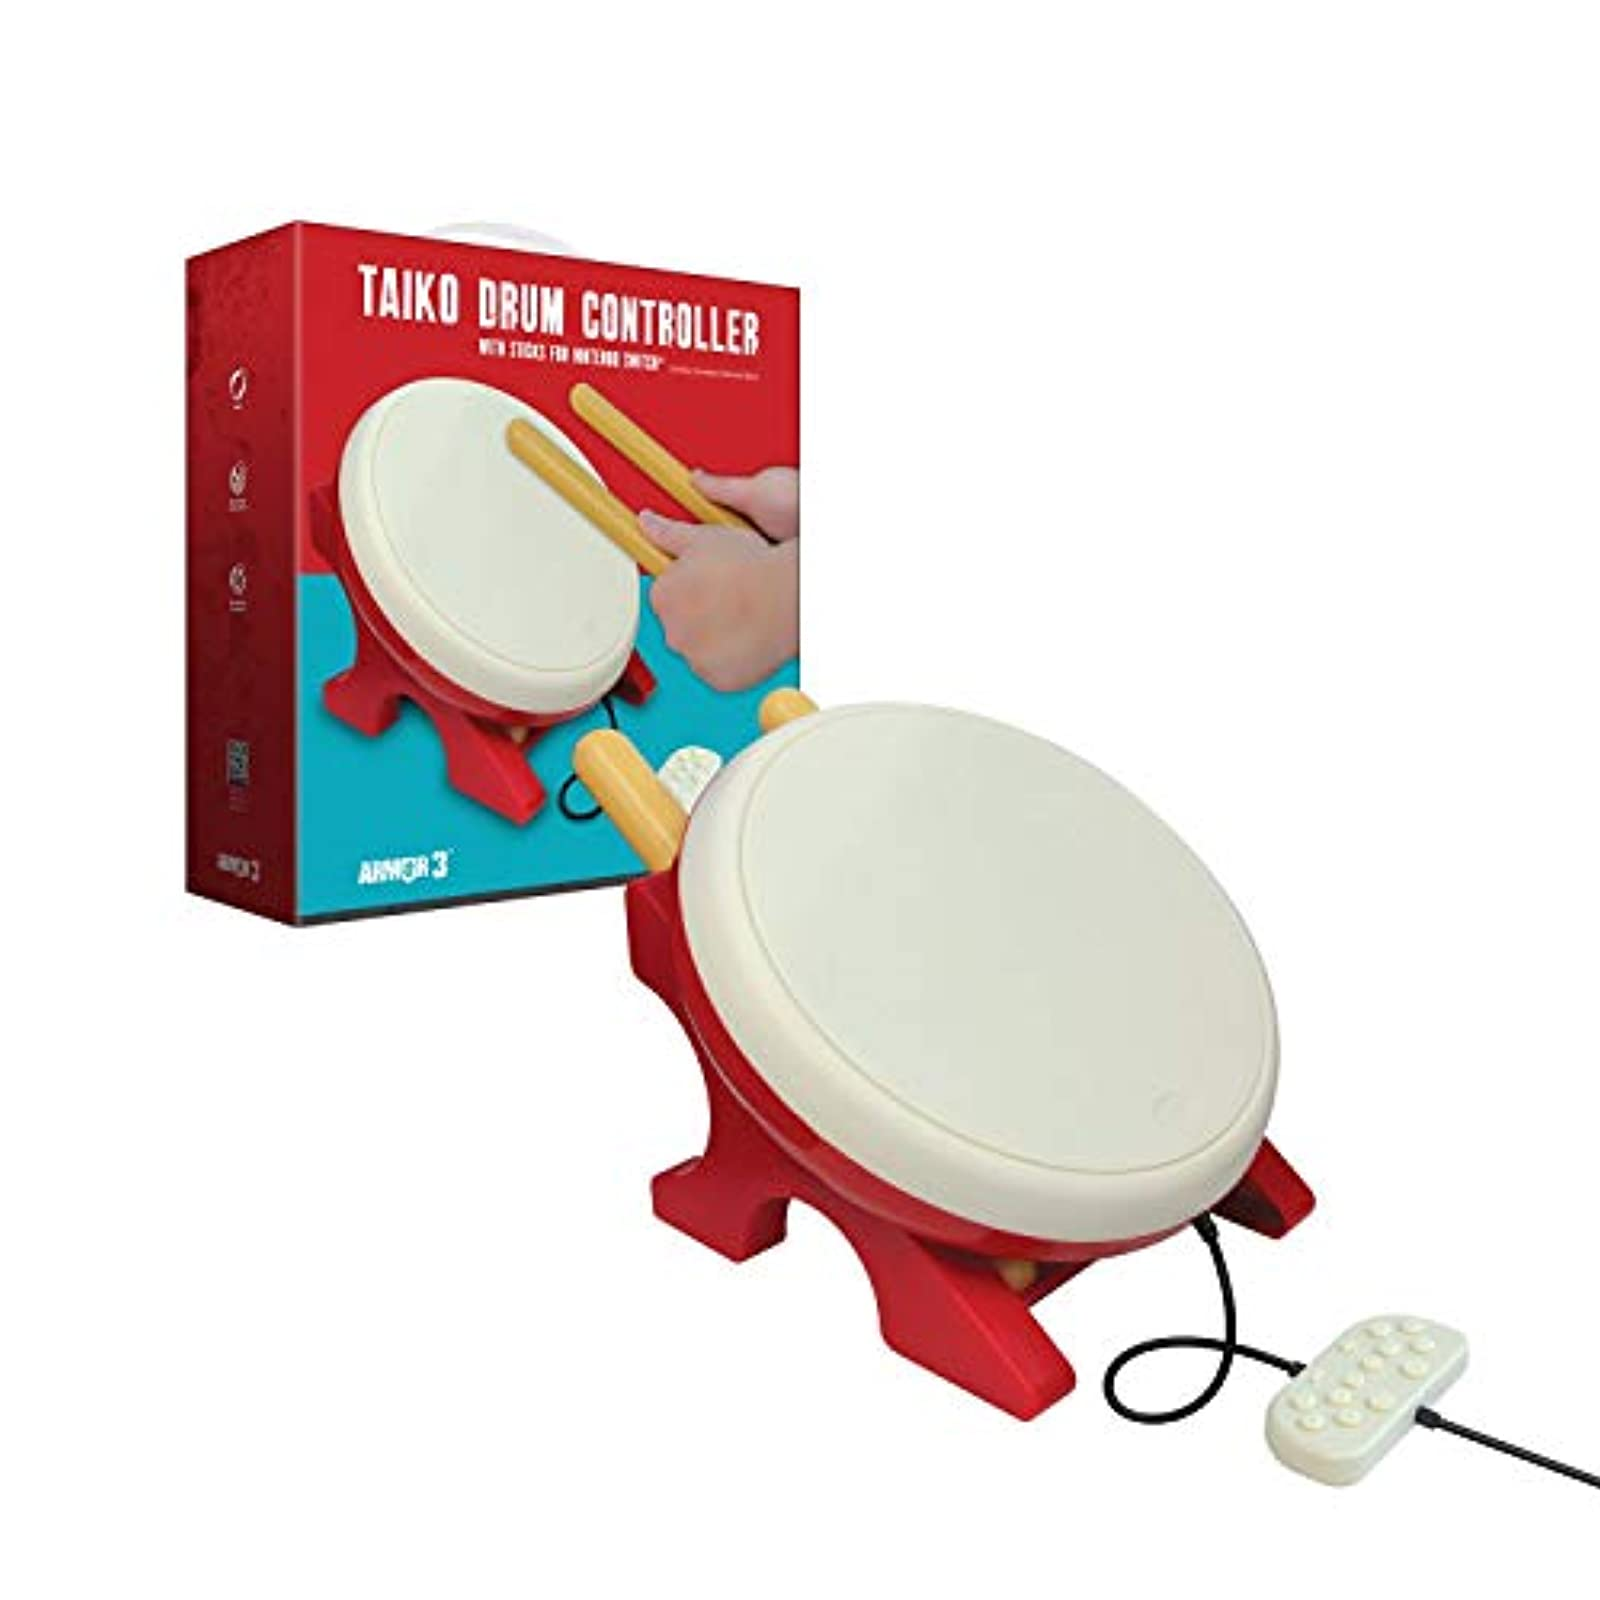 Armor3 Taiko Drum Controller With Sticks For Nintendo Switch Nintendo Switch